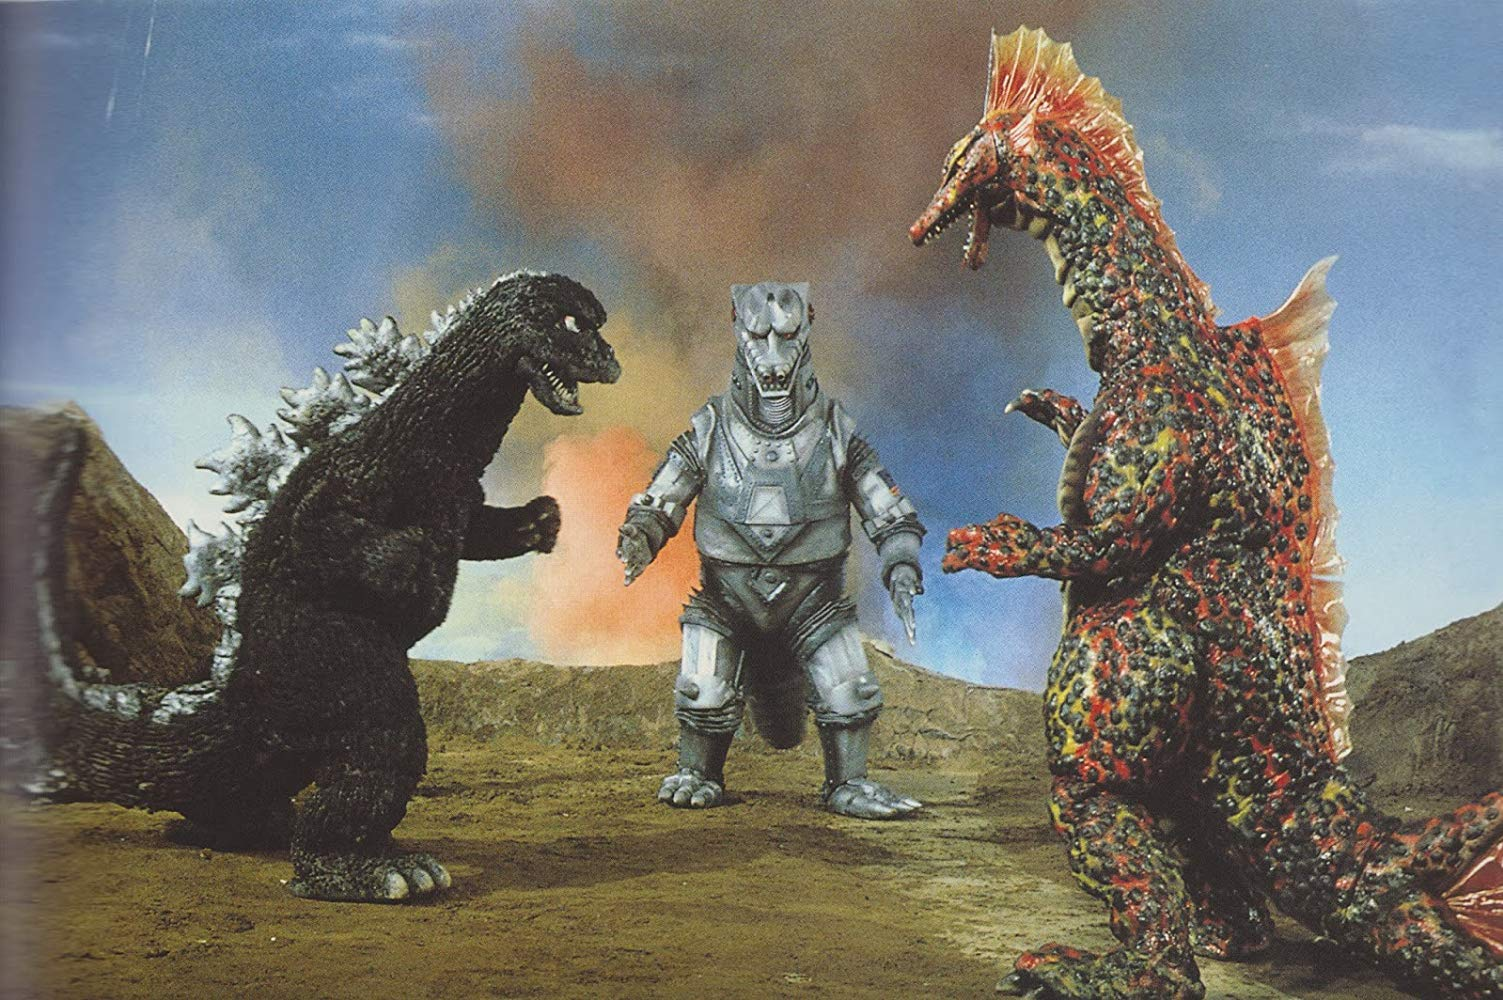 Monster line-up - Godzilla, Mechagodzilla, Titanosaurus in Terror of Mechagodzilla (1976)